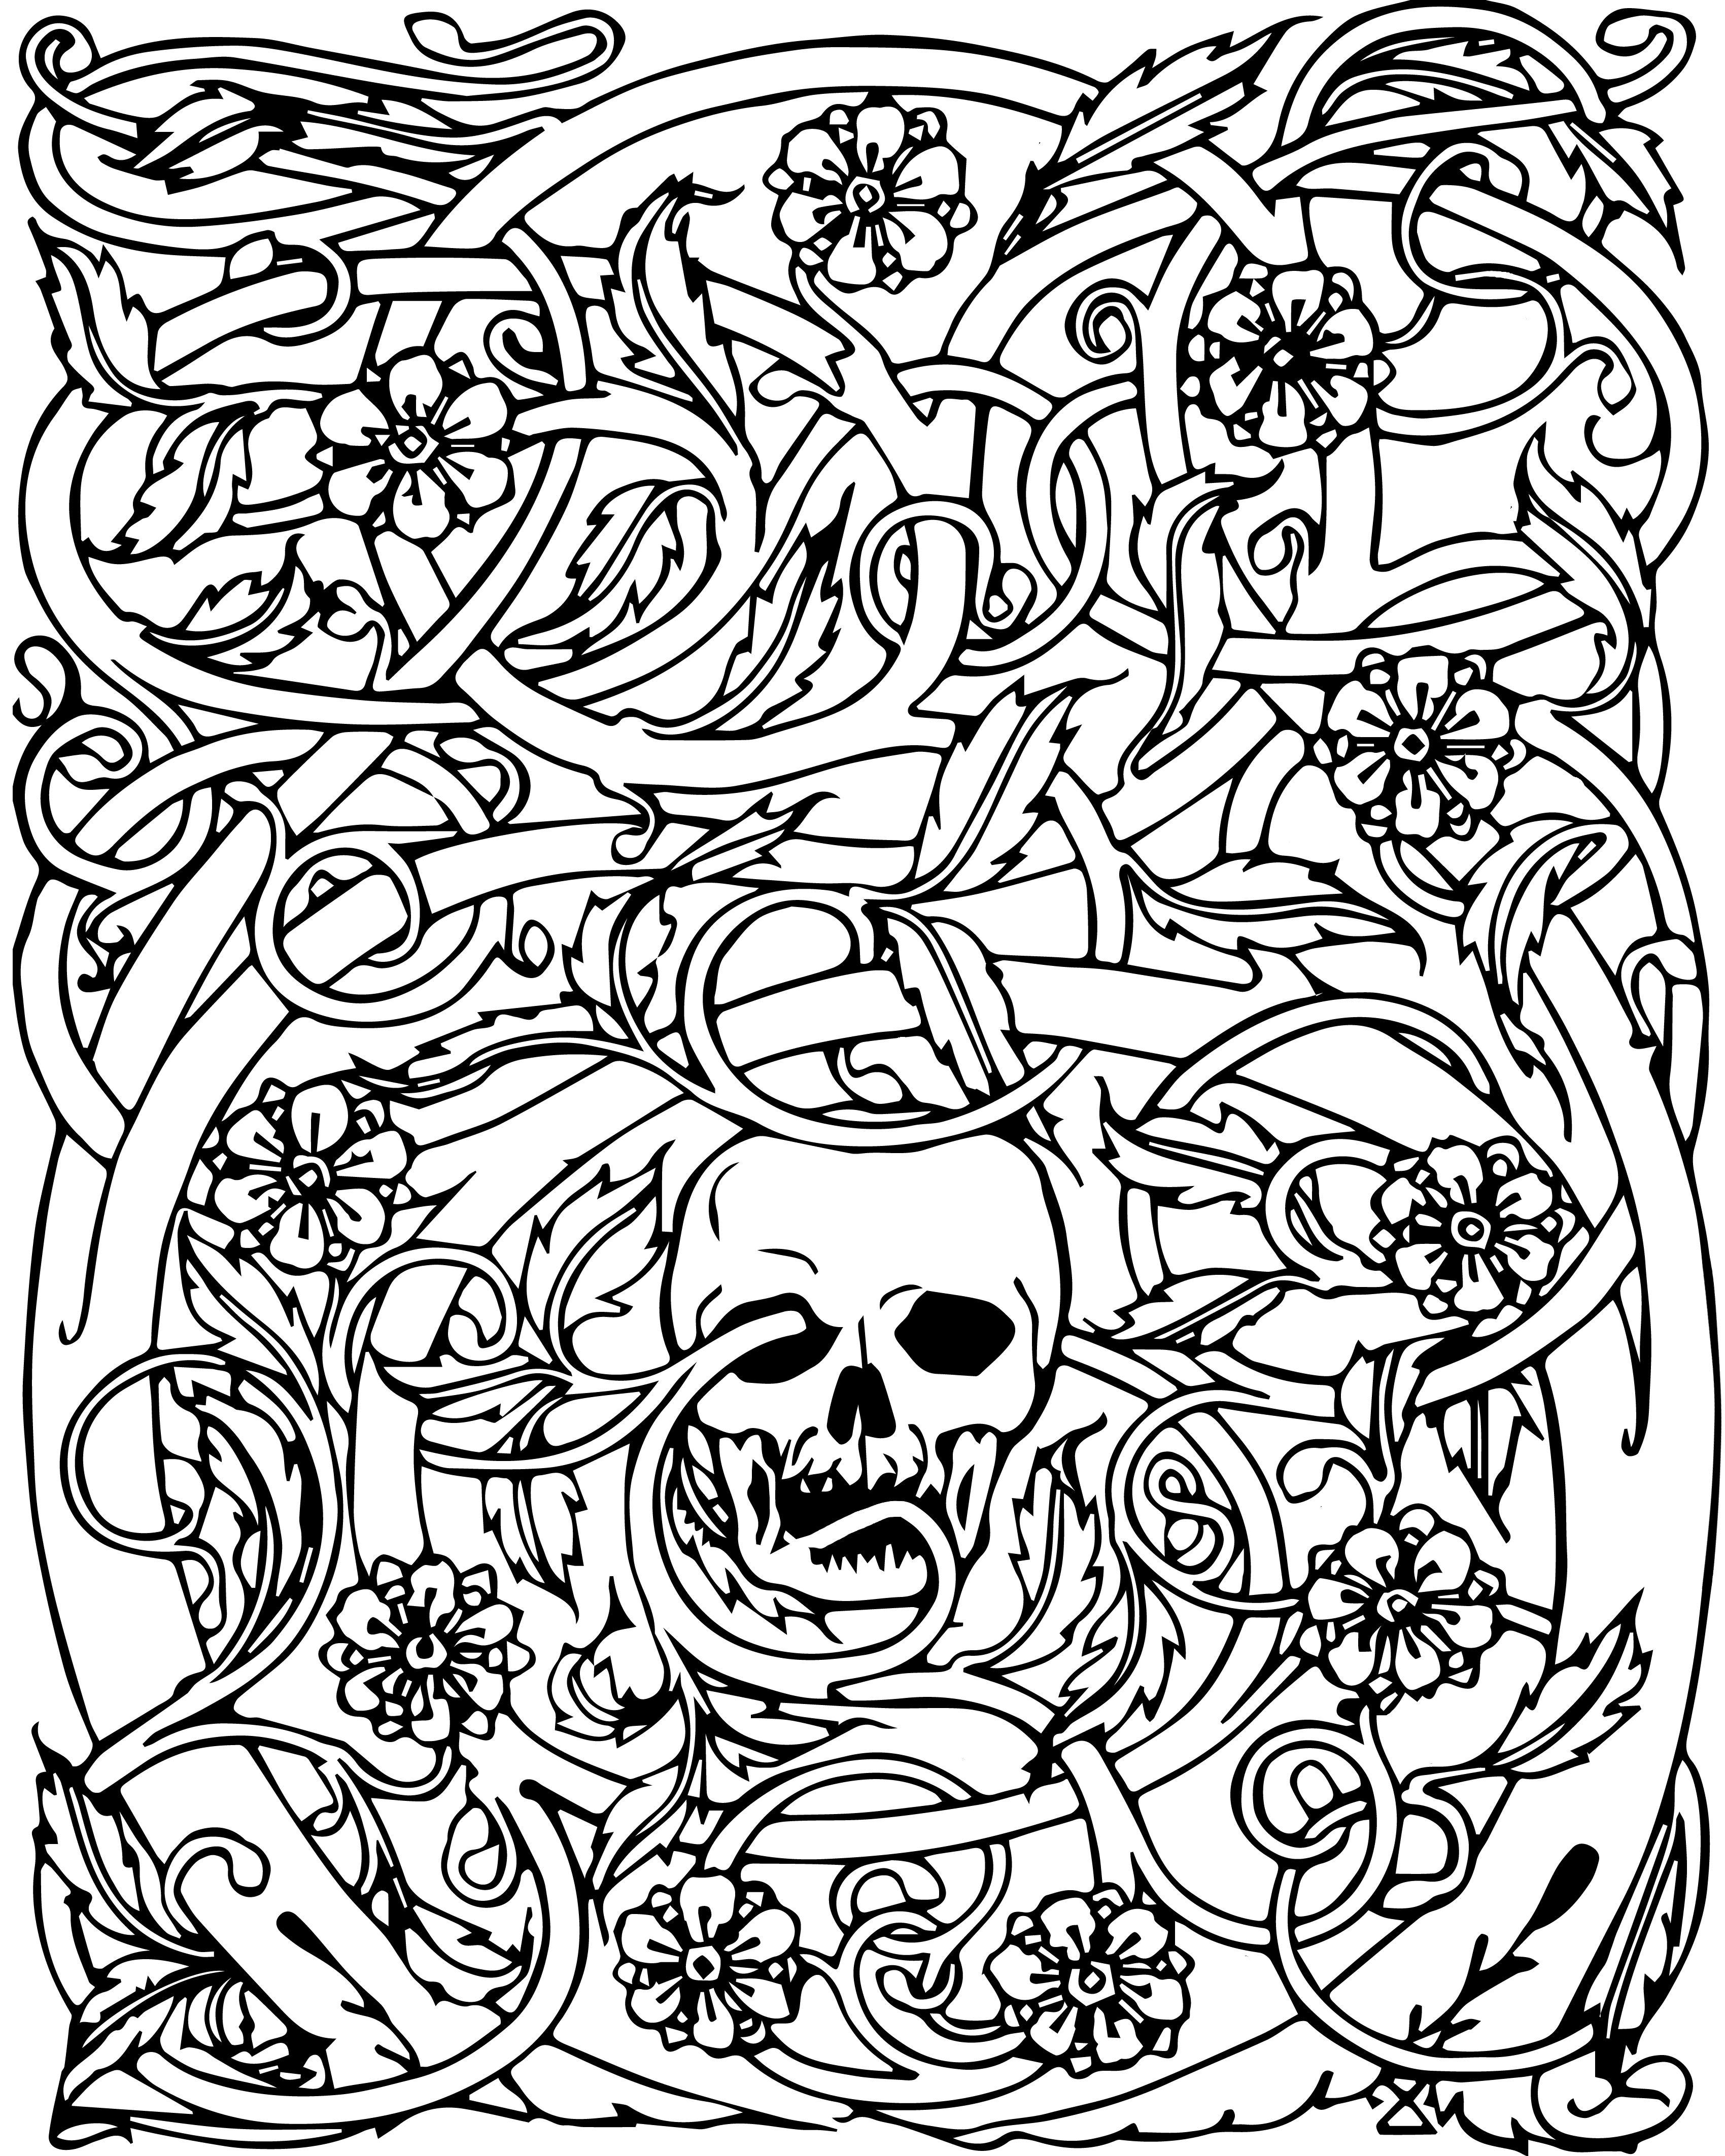 Free Printable Skull Coloring Pages at GetDrawings | Free ...